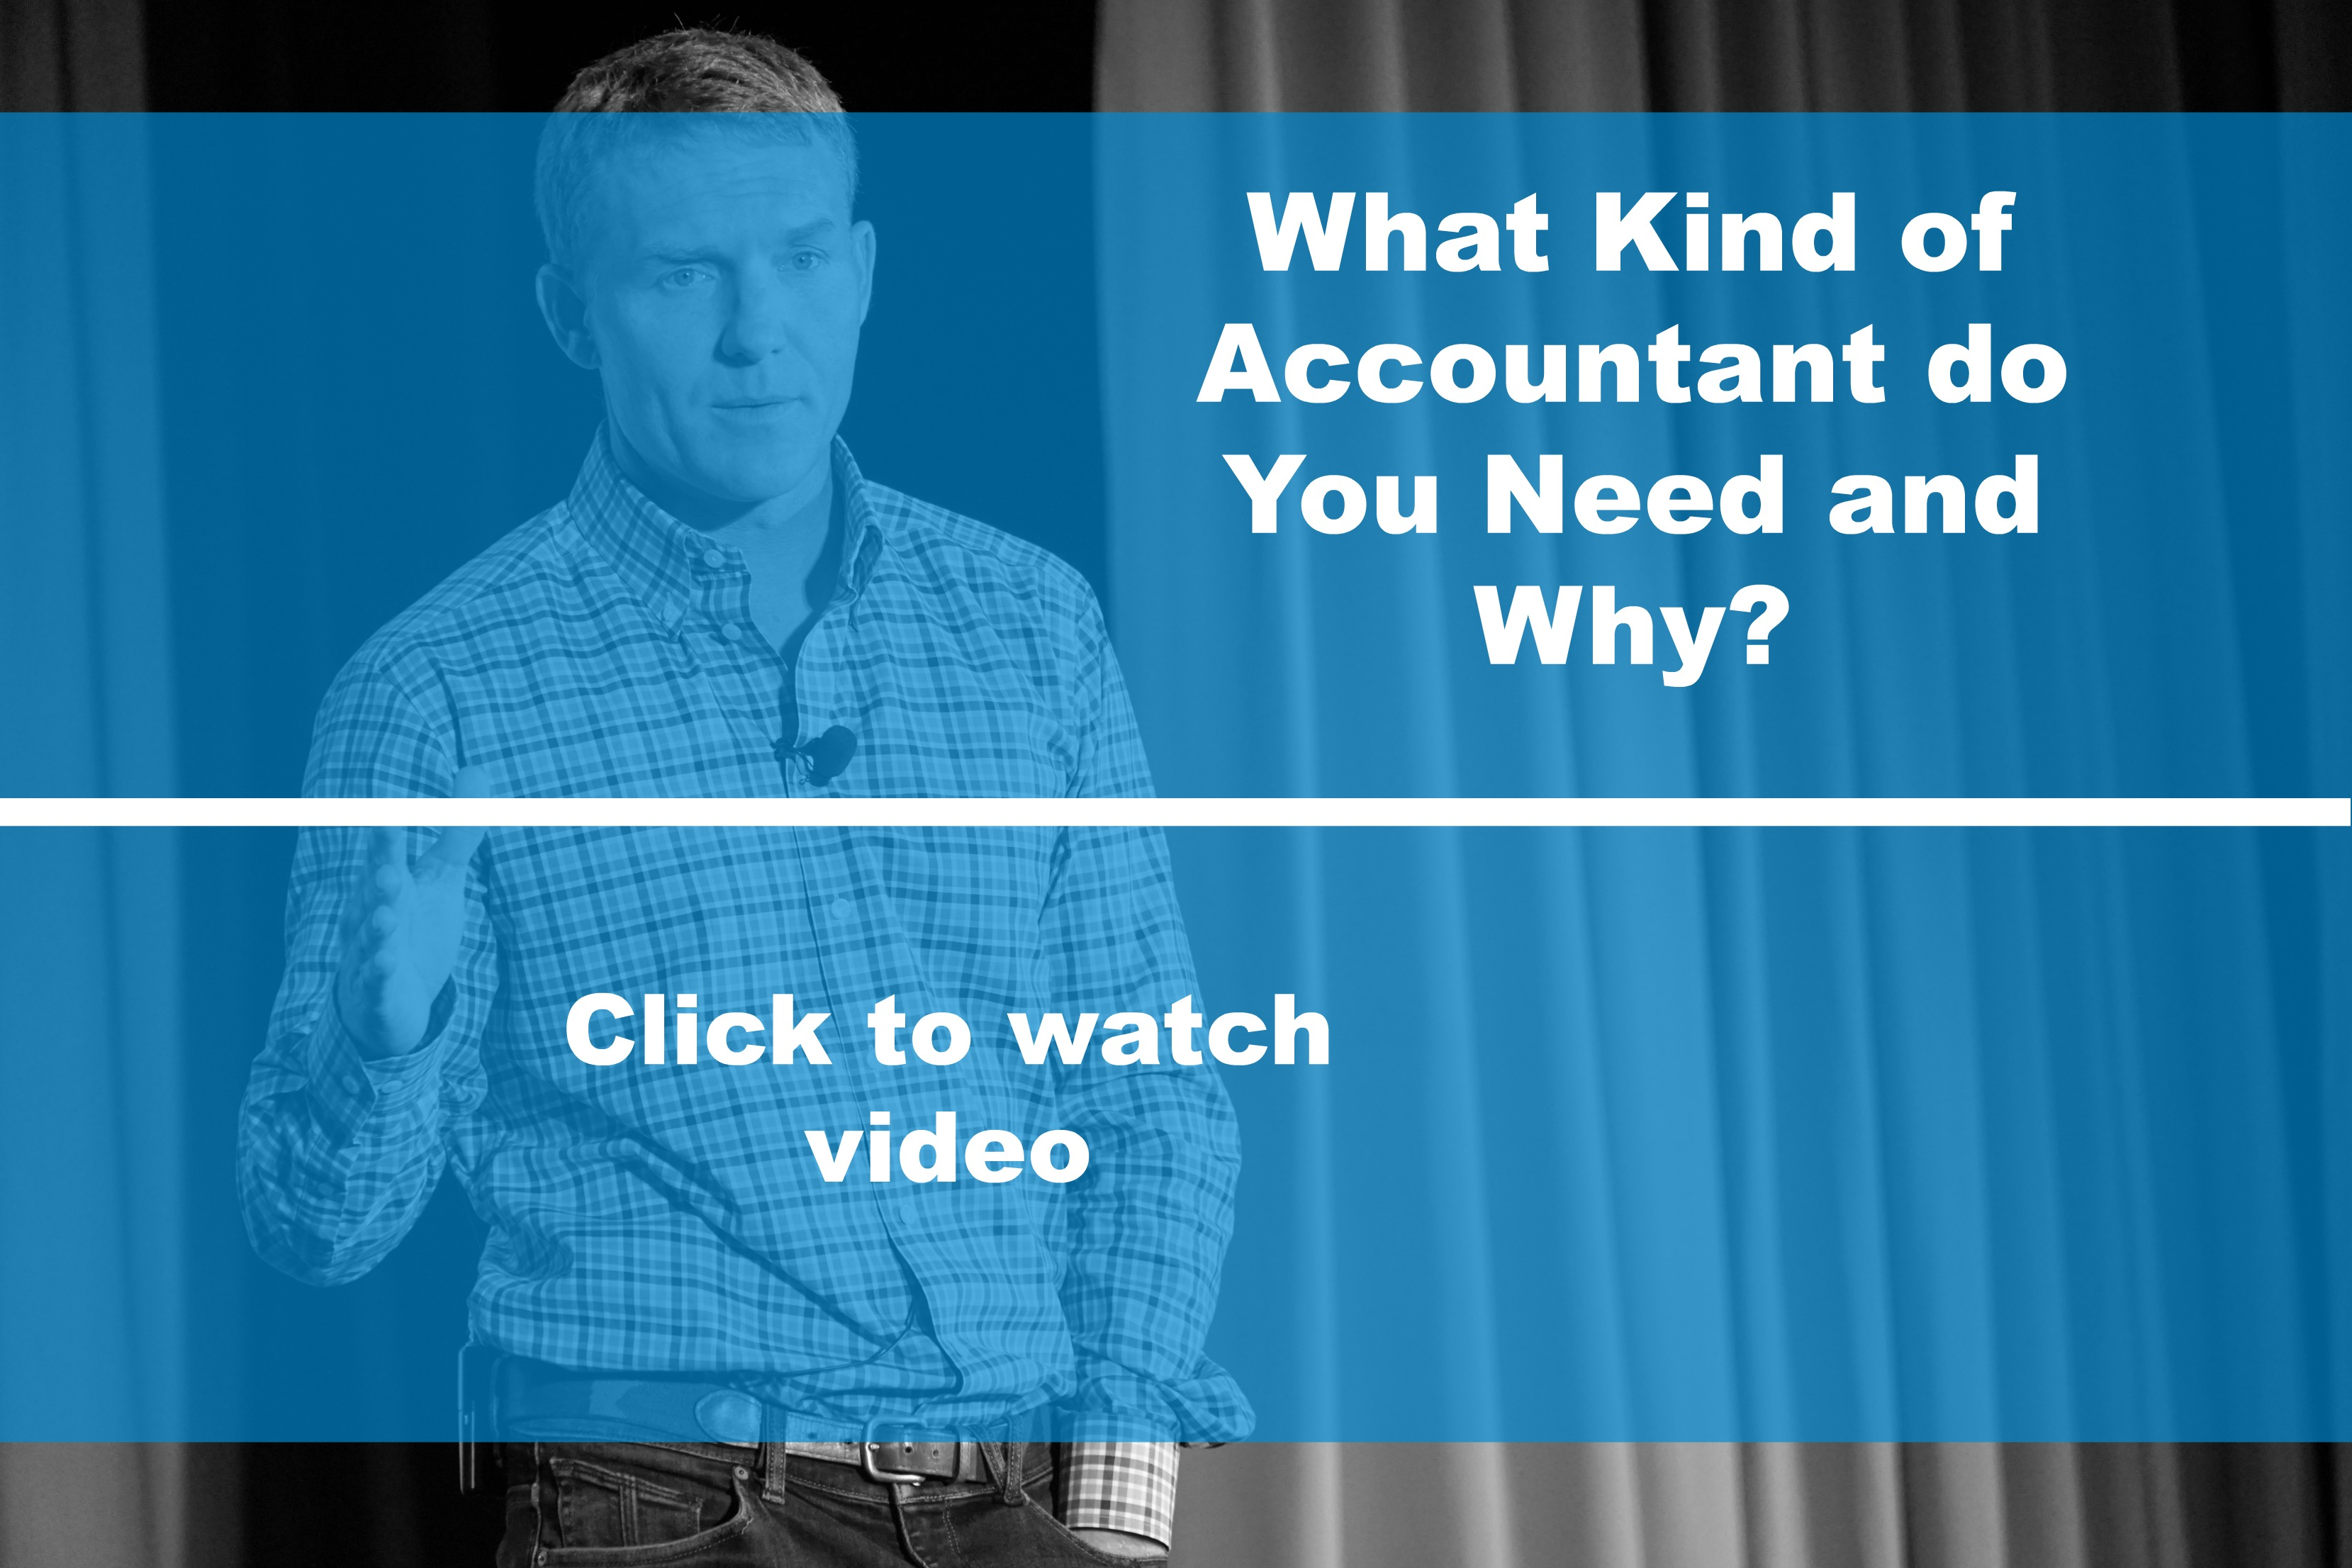 What Kind of Accountant do You Need?